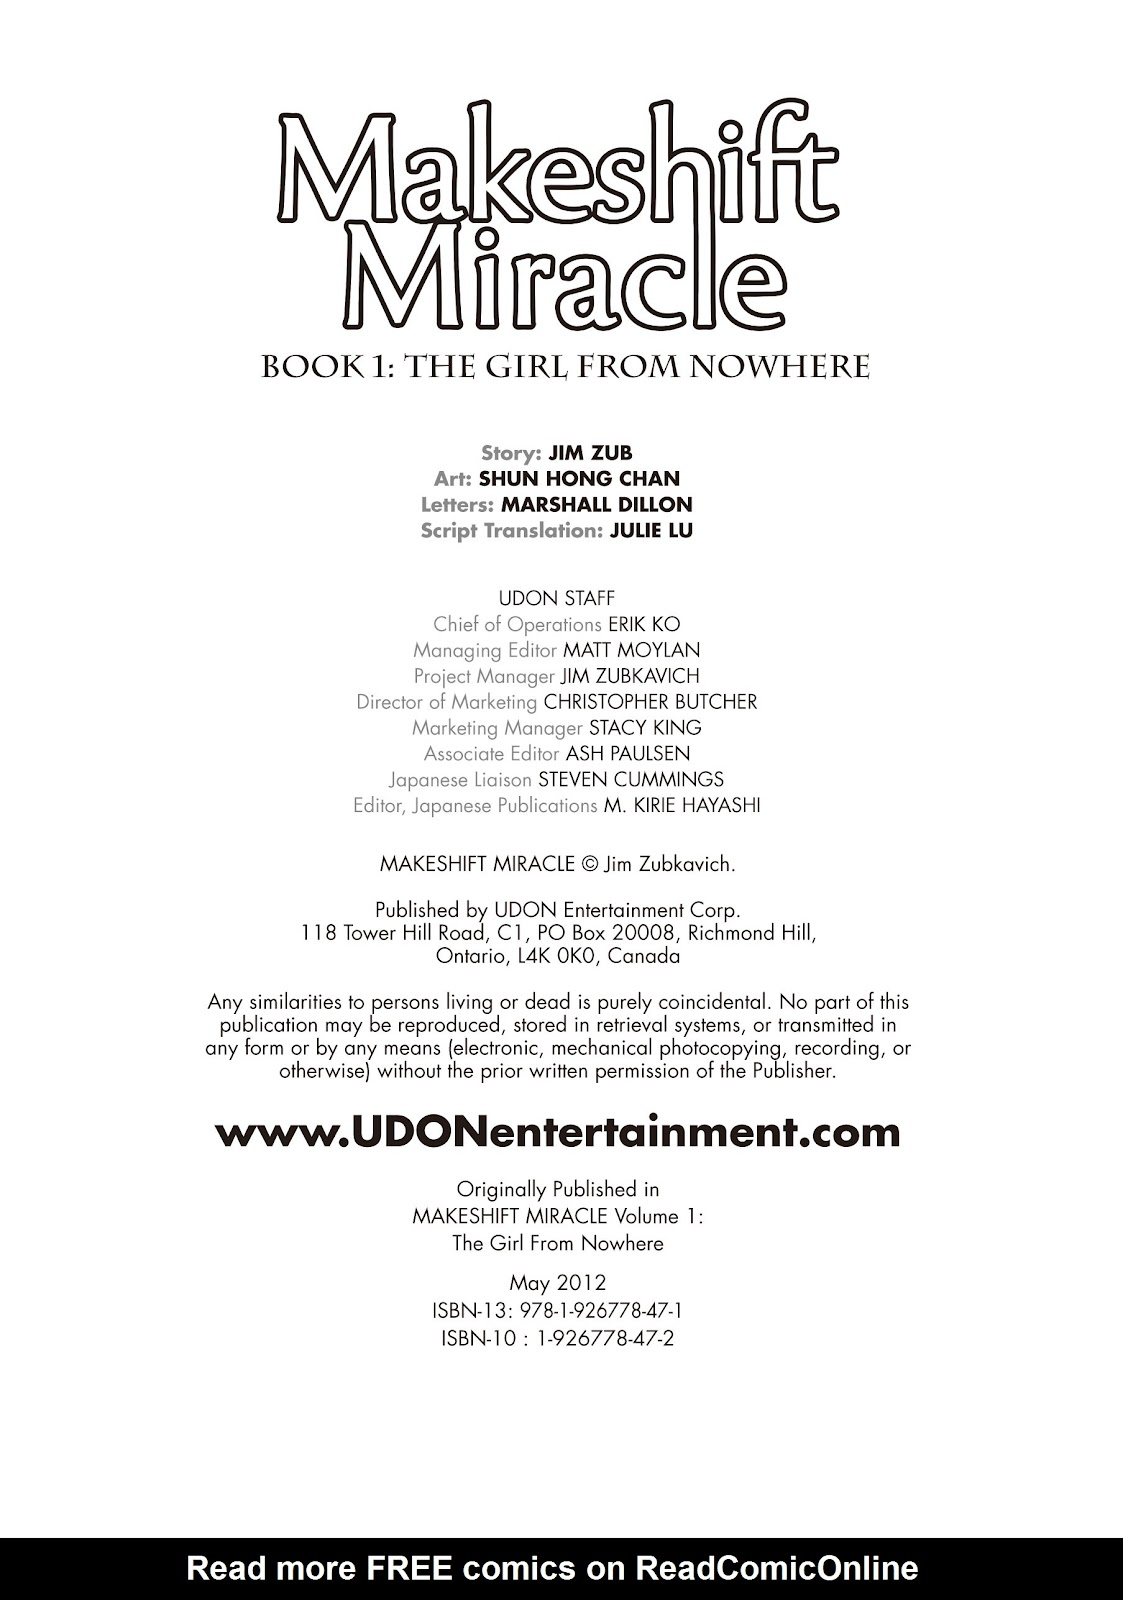 Read online Makeshift Miracle: The Girl From Nowhere comic -  Issue #1 - 3